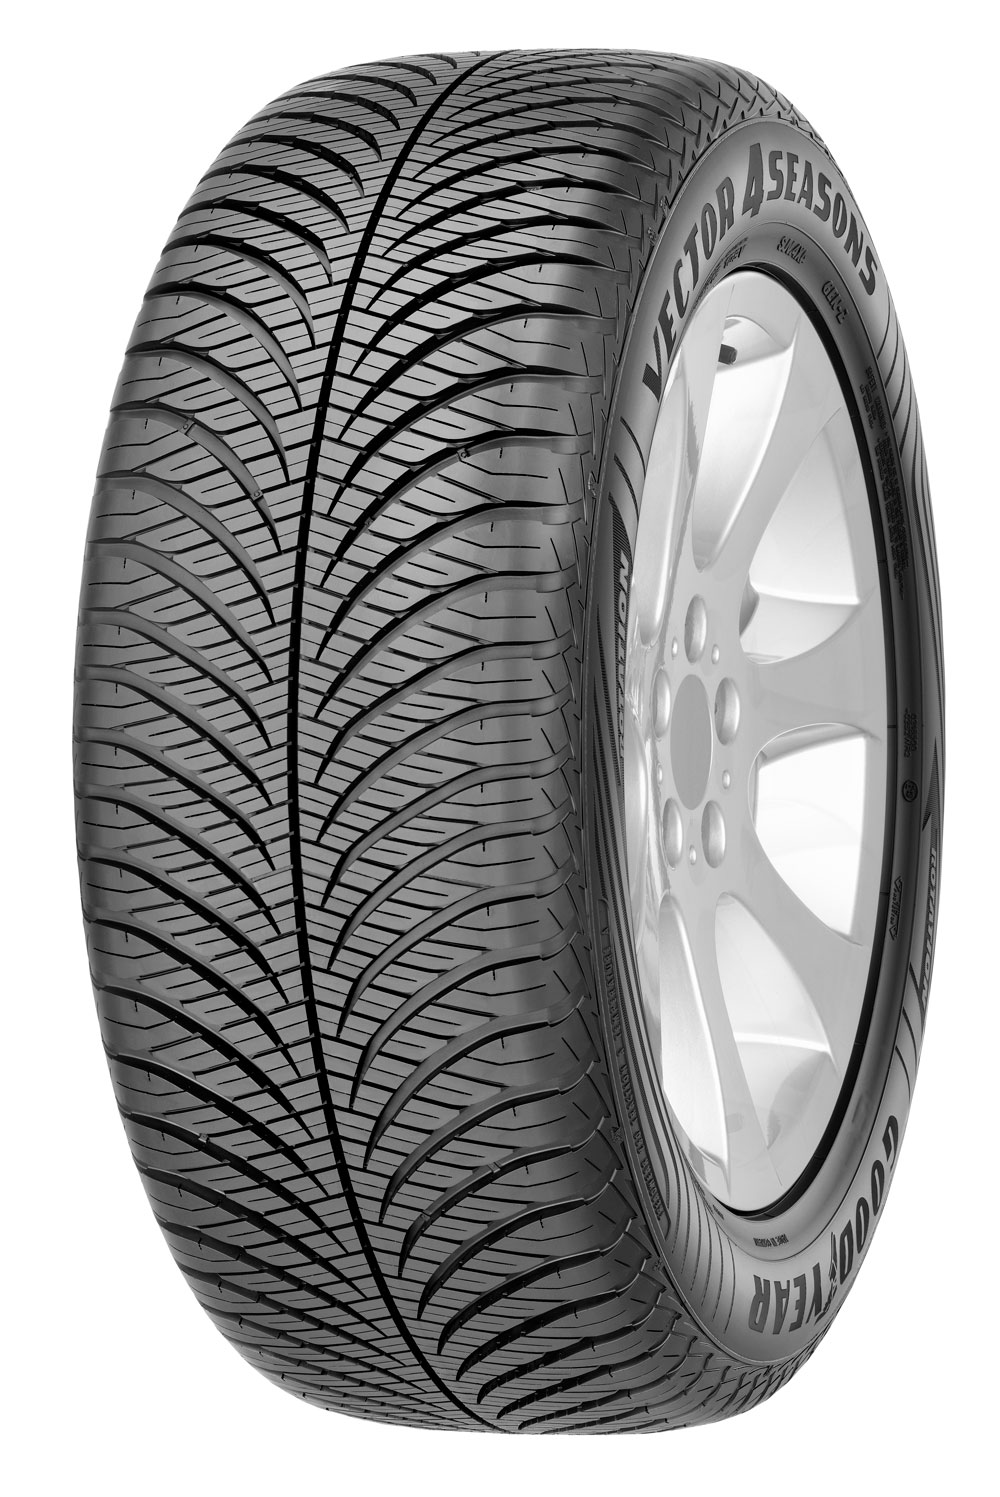 Anvelopa all seasons GOODYEAR VECTOR-4S G2 205/55 R16 91H